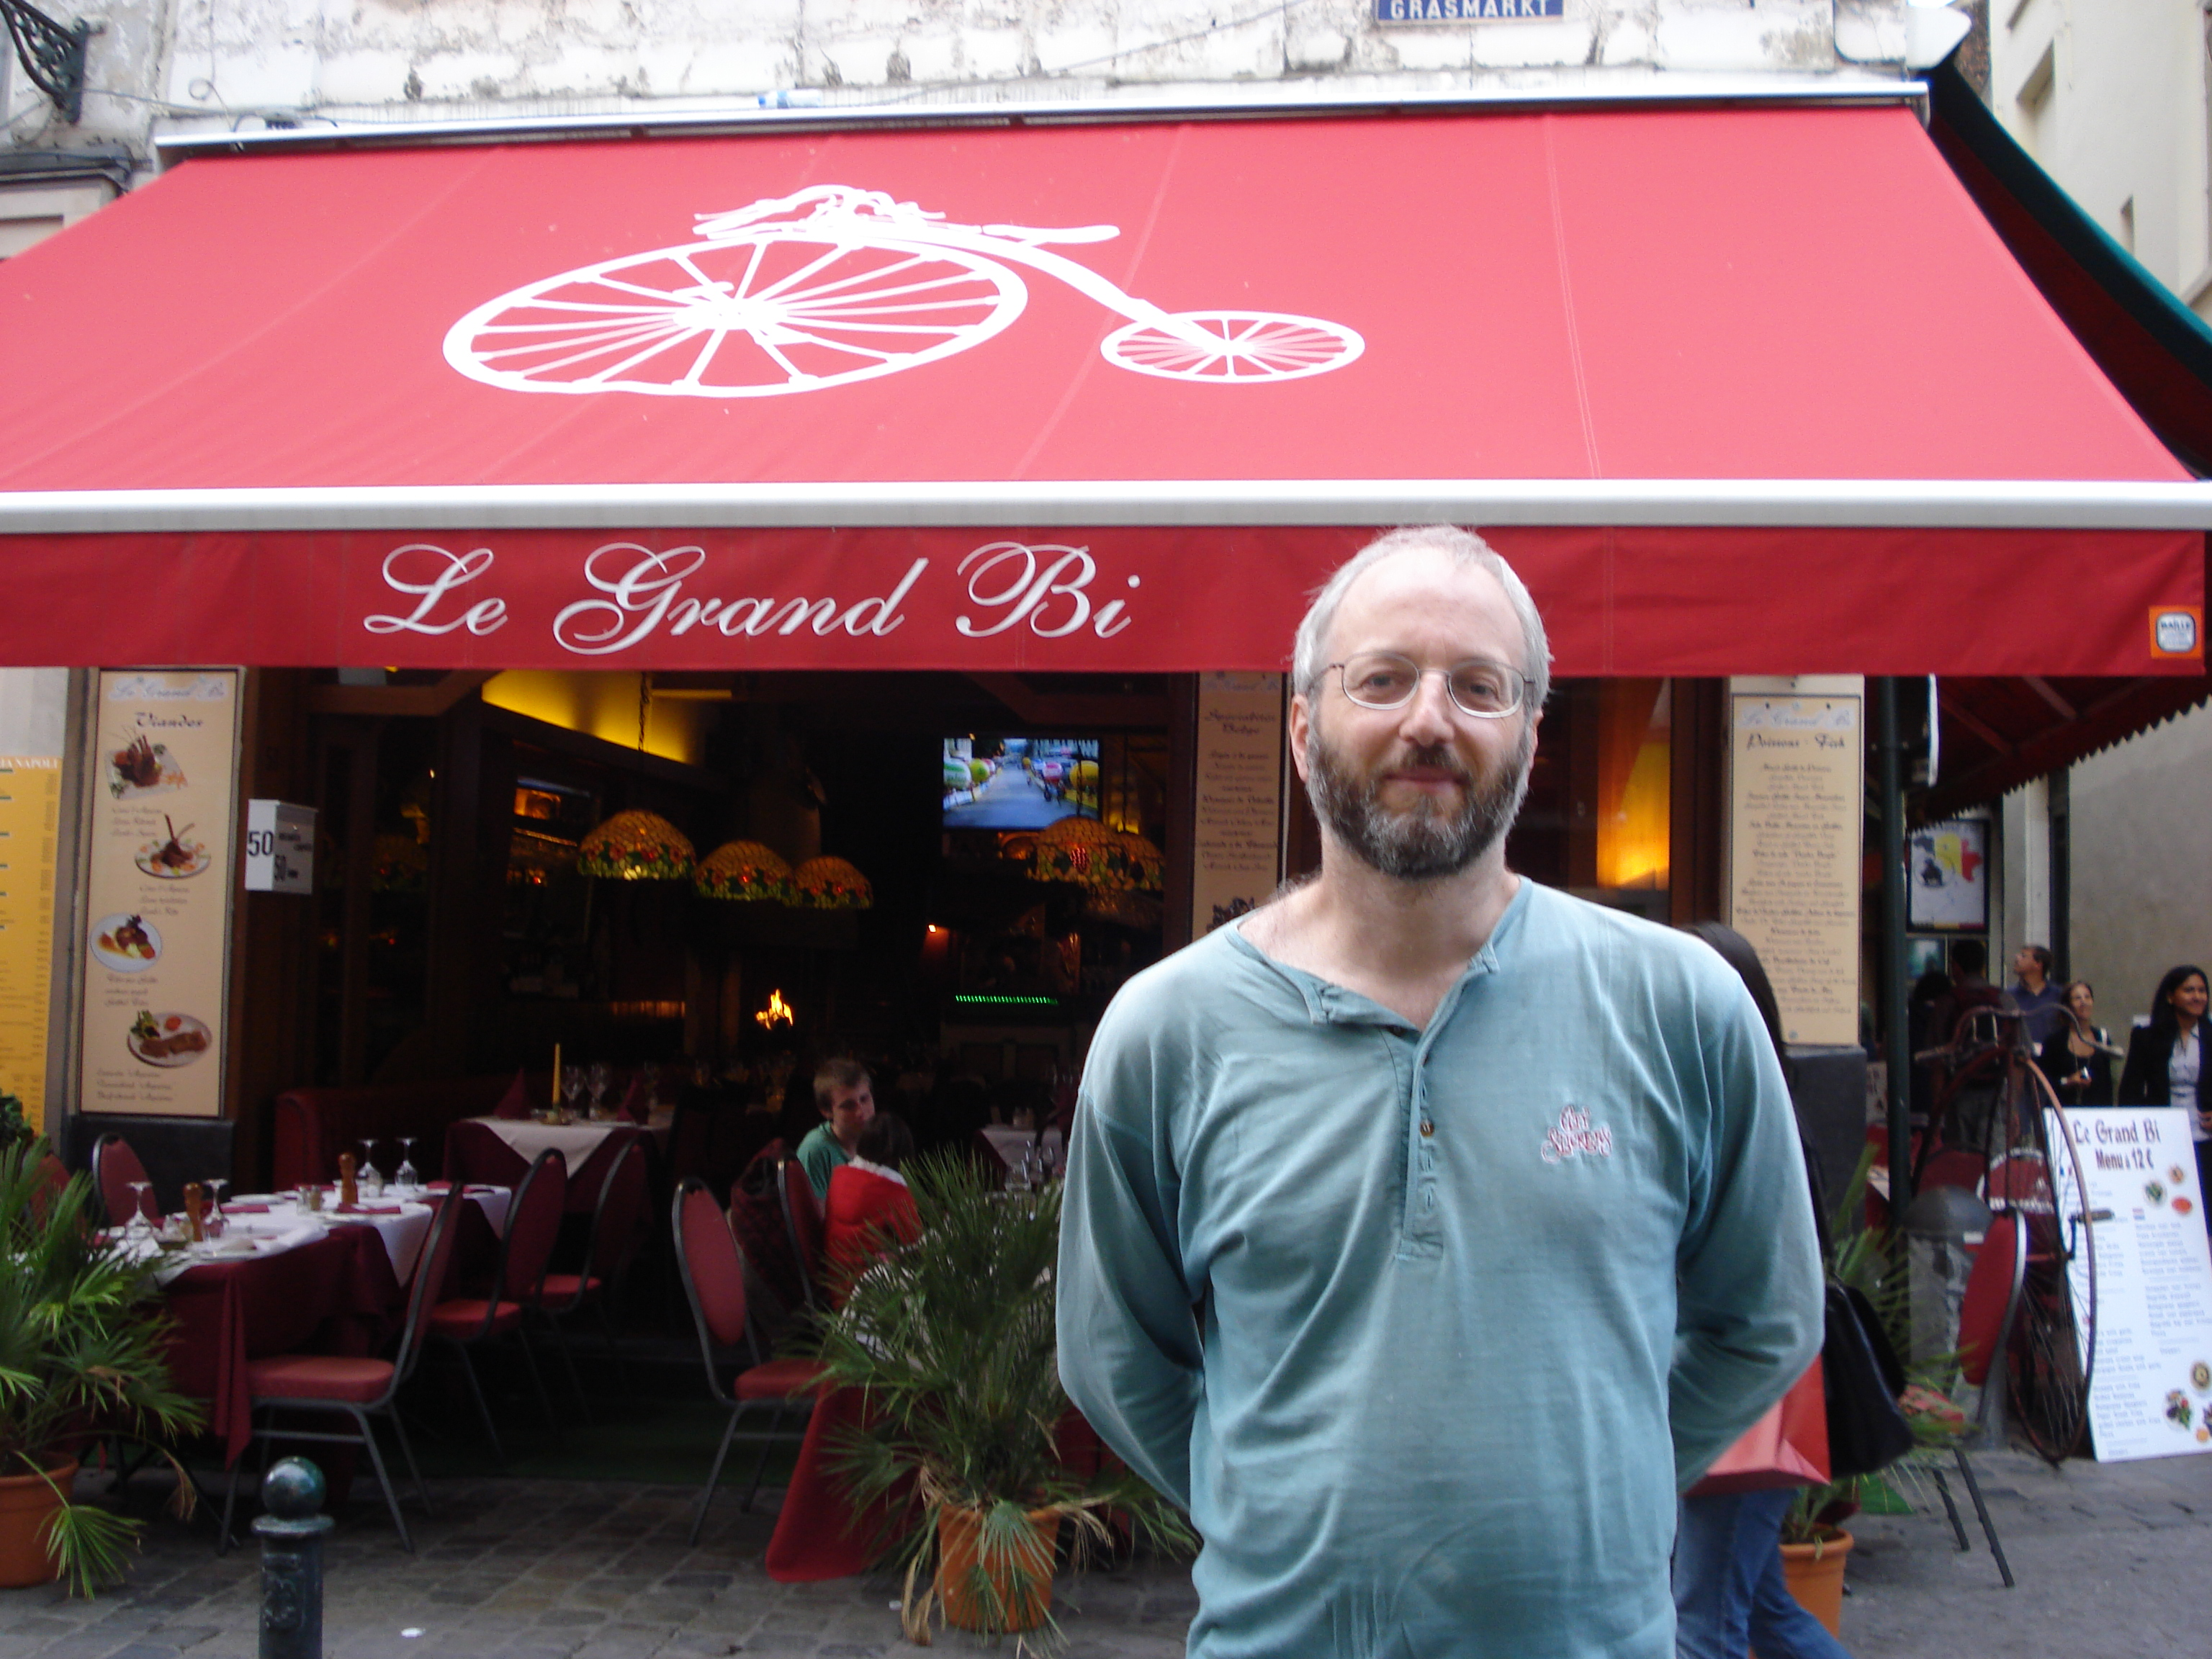 Ian in front of a Brussels restaurant called Le Grand Bi